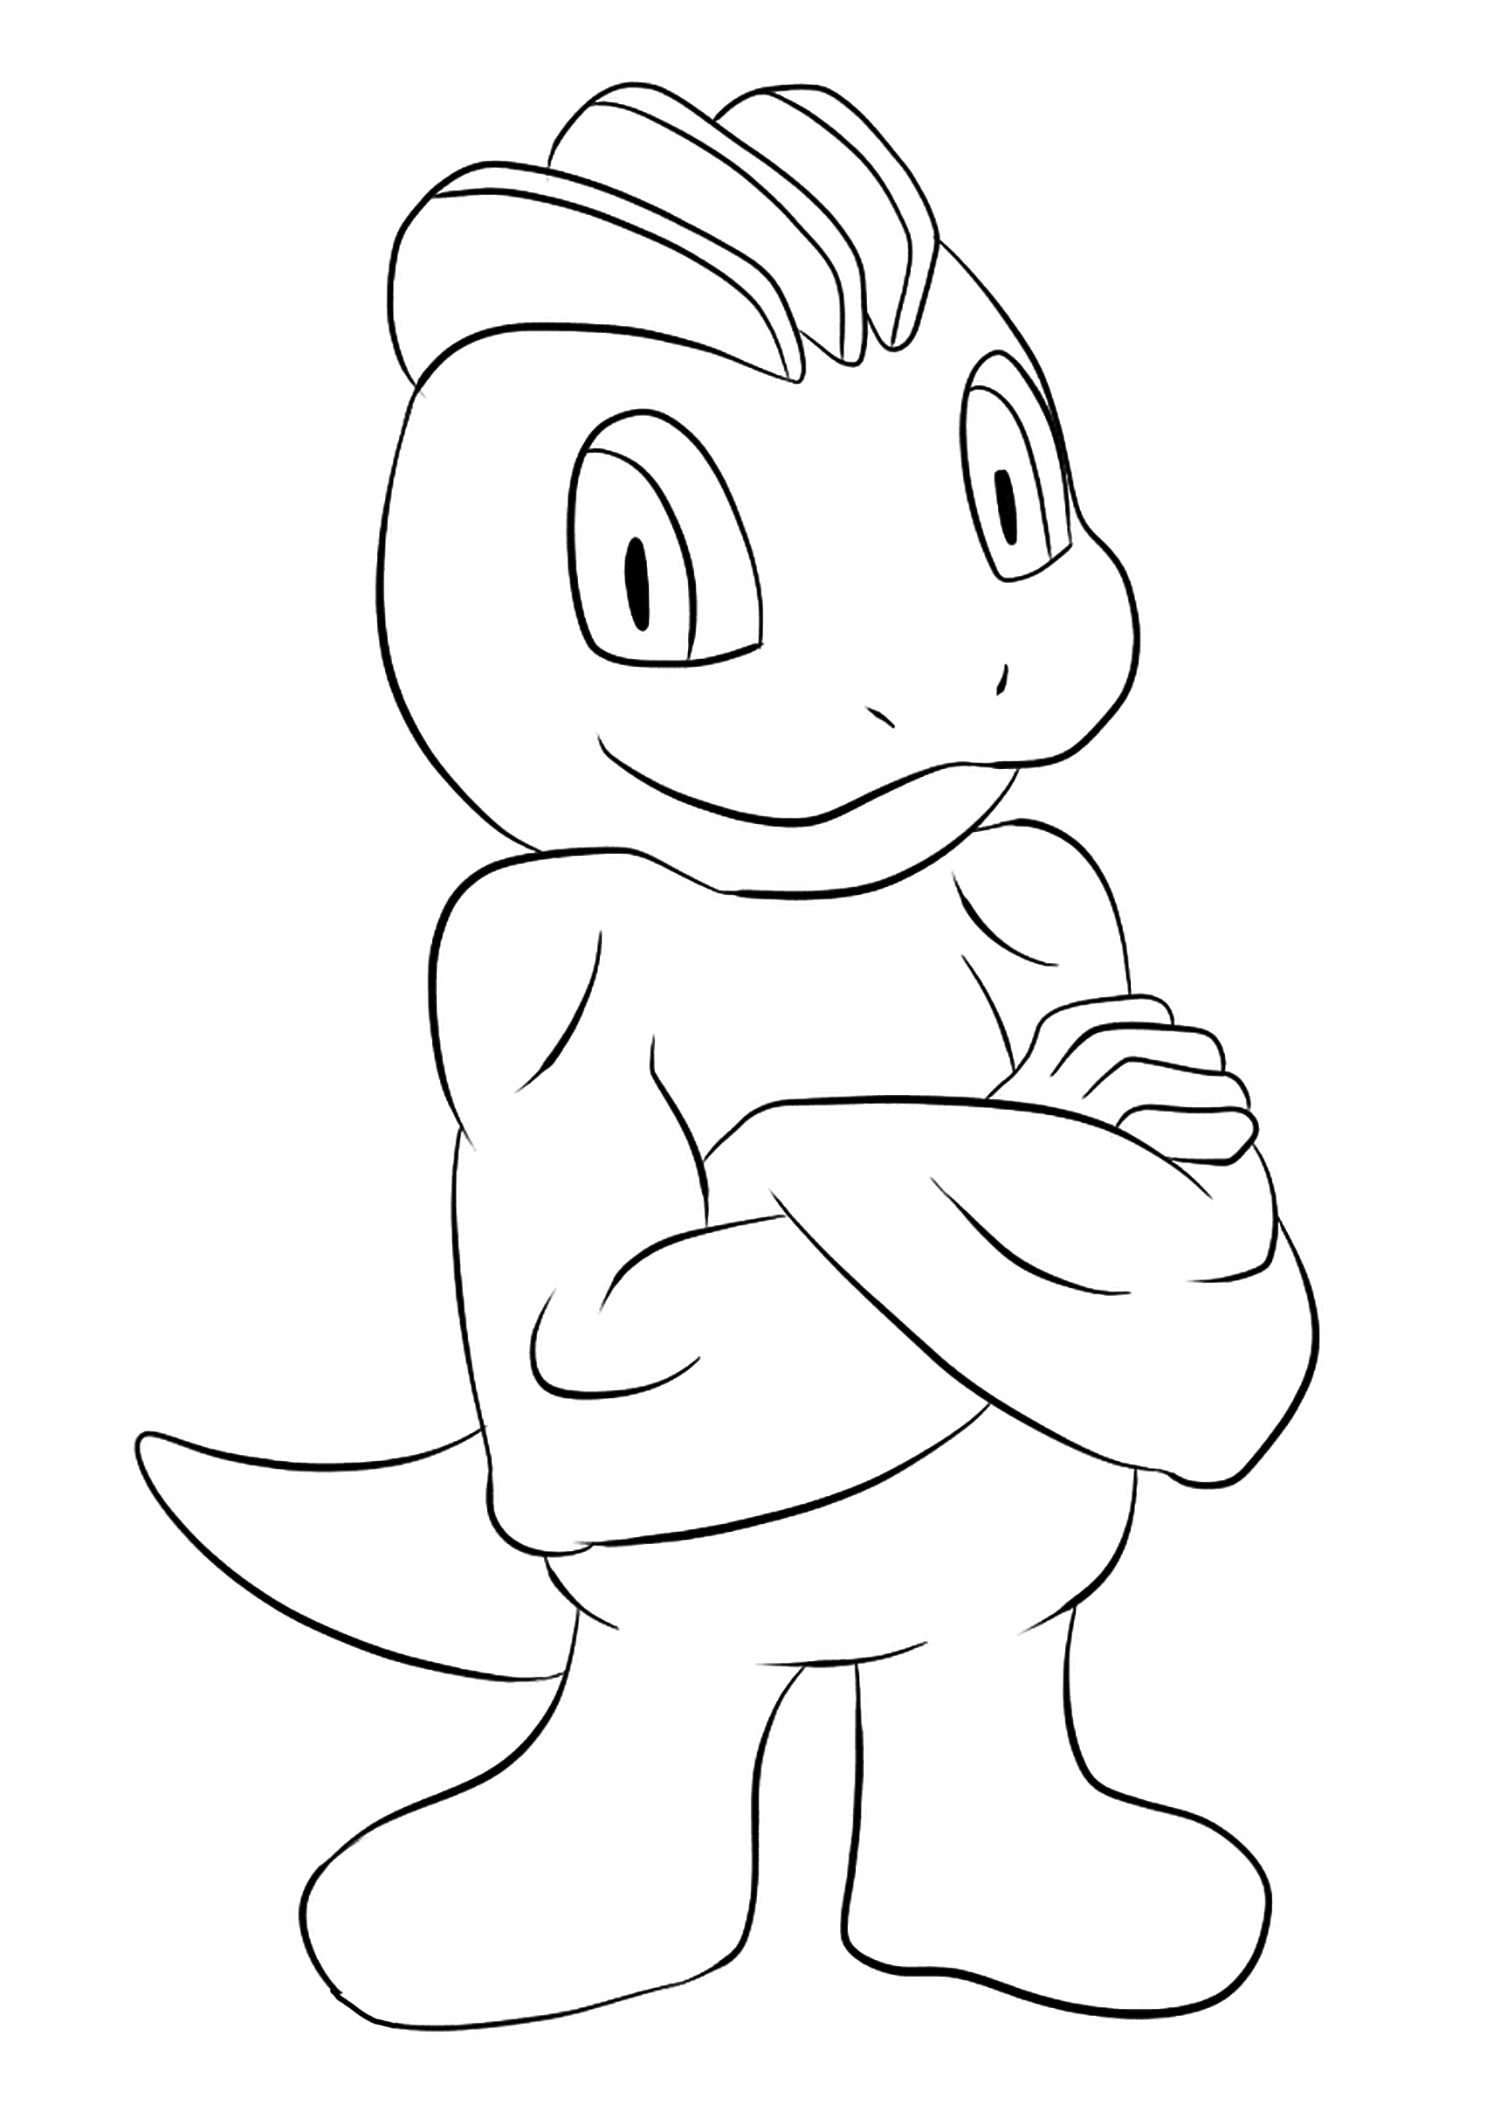 Machop (No.66)Machop Coloring page, Generation I Pokemon of type FightingOriginal image credit: Pokemon linearts by Lilly Gerbil on Deviantart.Permission:  All rights reserved © Pokemon company and Ken Sugimori.